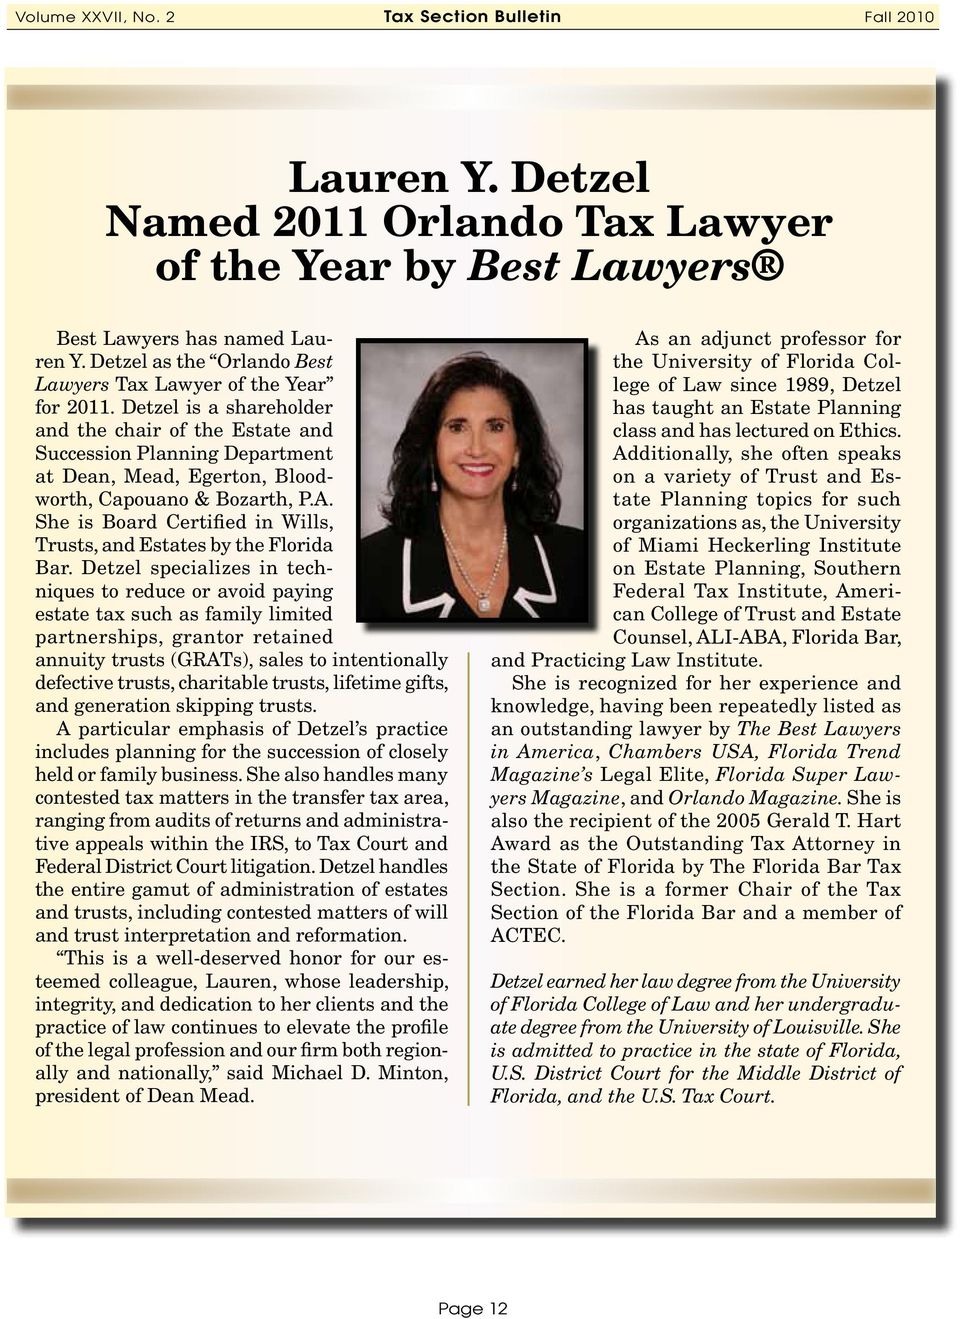 She is Board Certified in Wills, Trusts, and Estates by the Florida Bar.